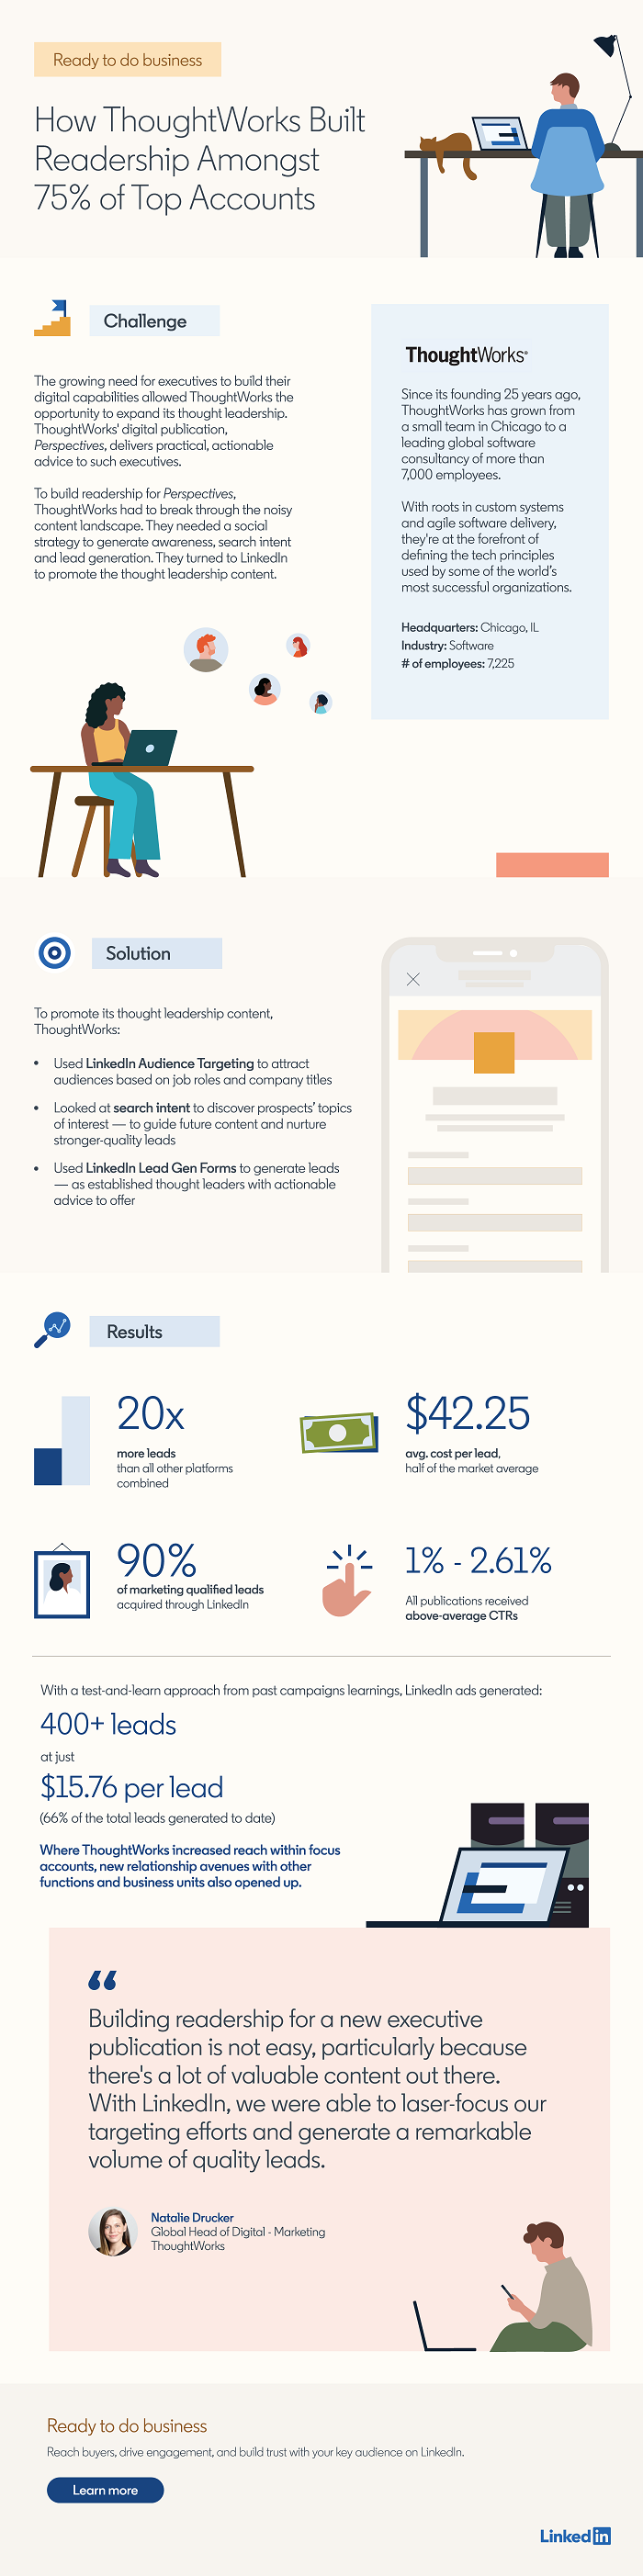 Thoughtworks case study